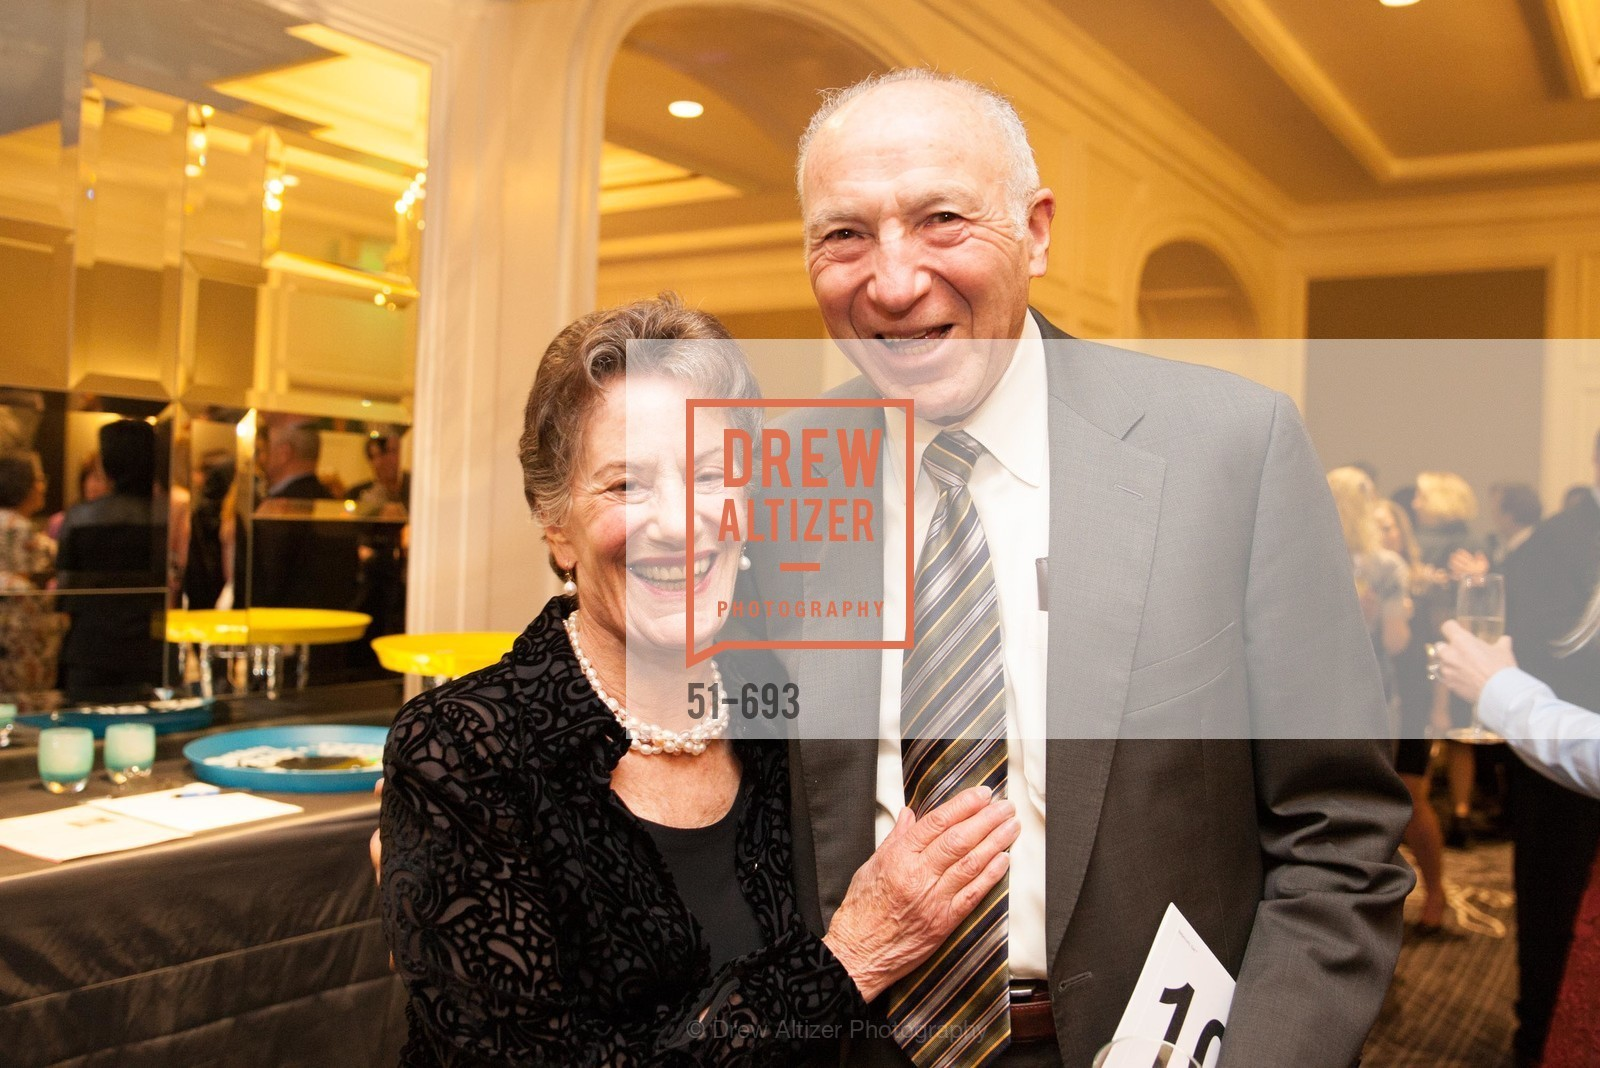 Gail Nebensahl, Bernie Nebensahl, SFCASA'S Fostering Change Gala:  Room Without A Roof, US, May 2nd, 2015,Drew Altizer, Drew Altizer Photography, full-service agency, private events, San Francisco photographer, photographer california